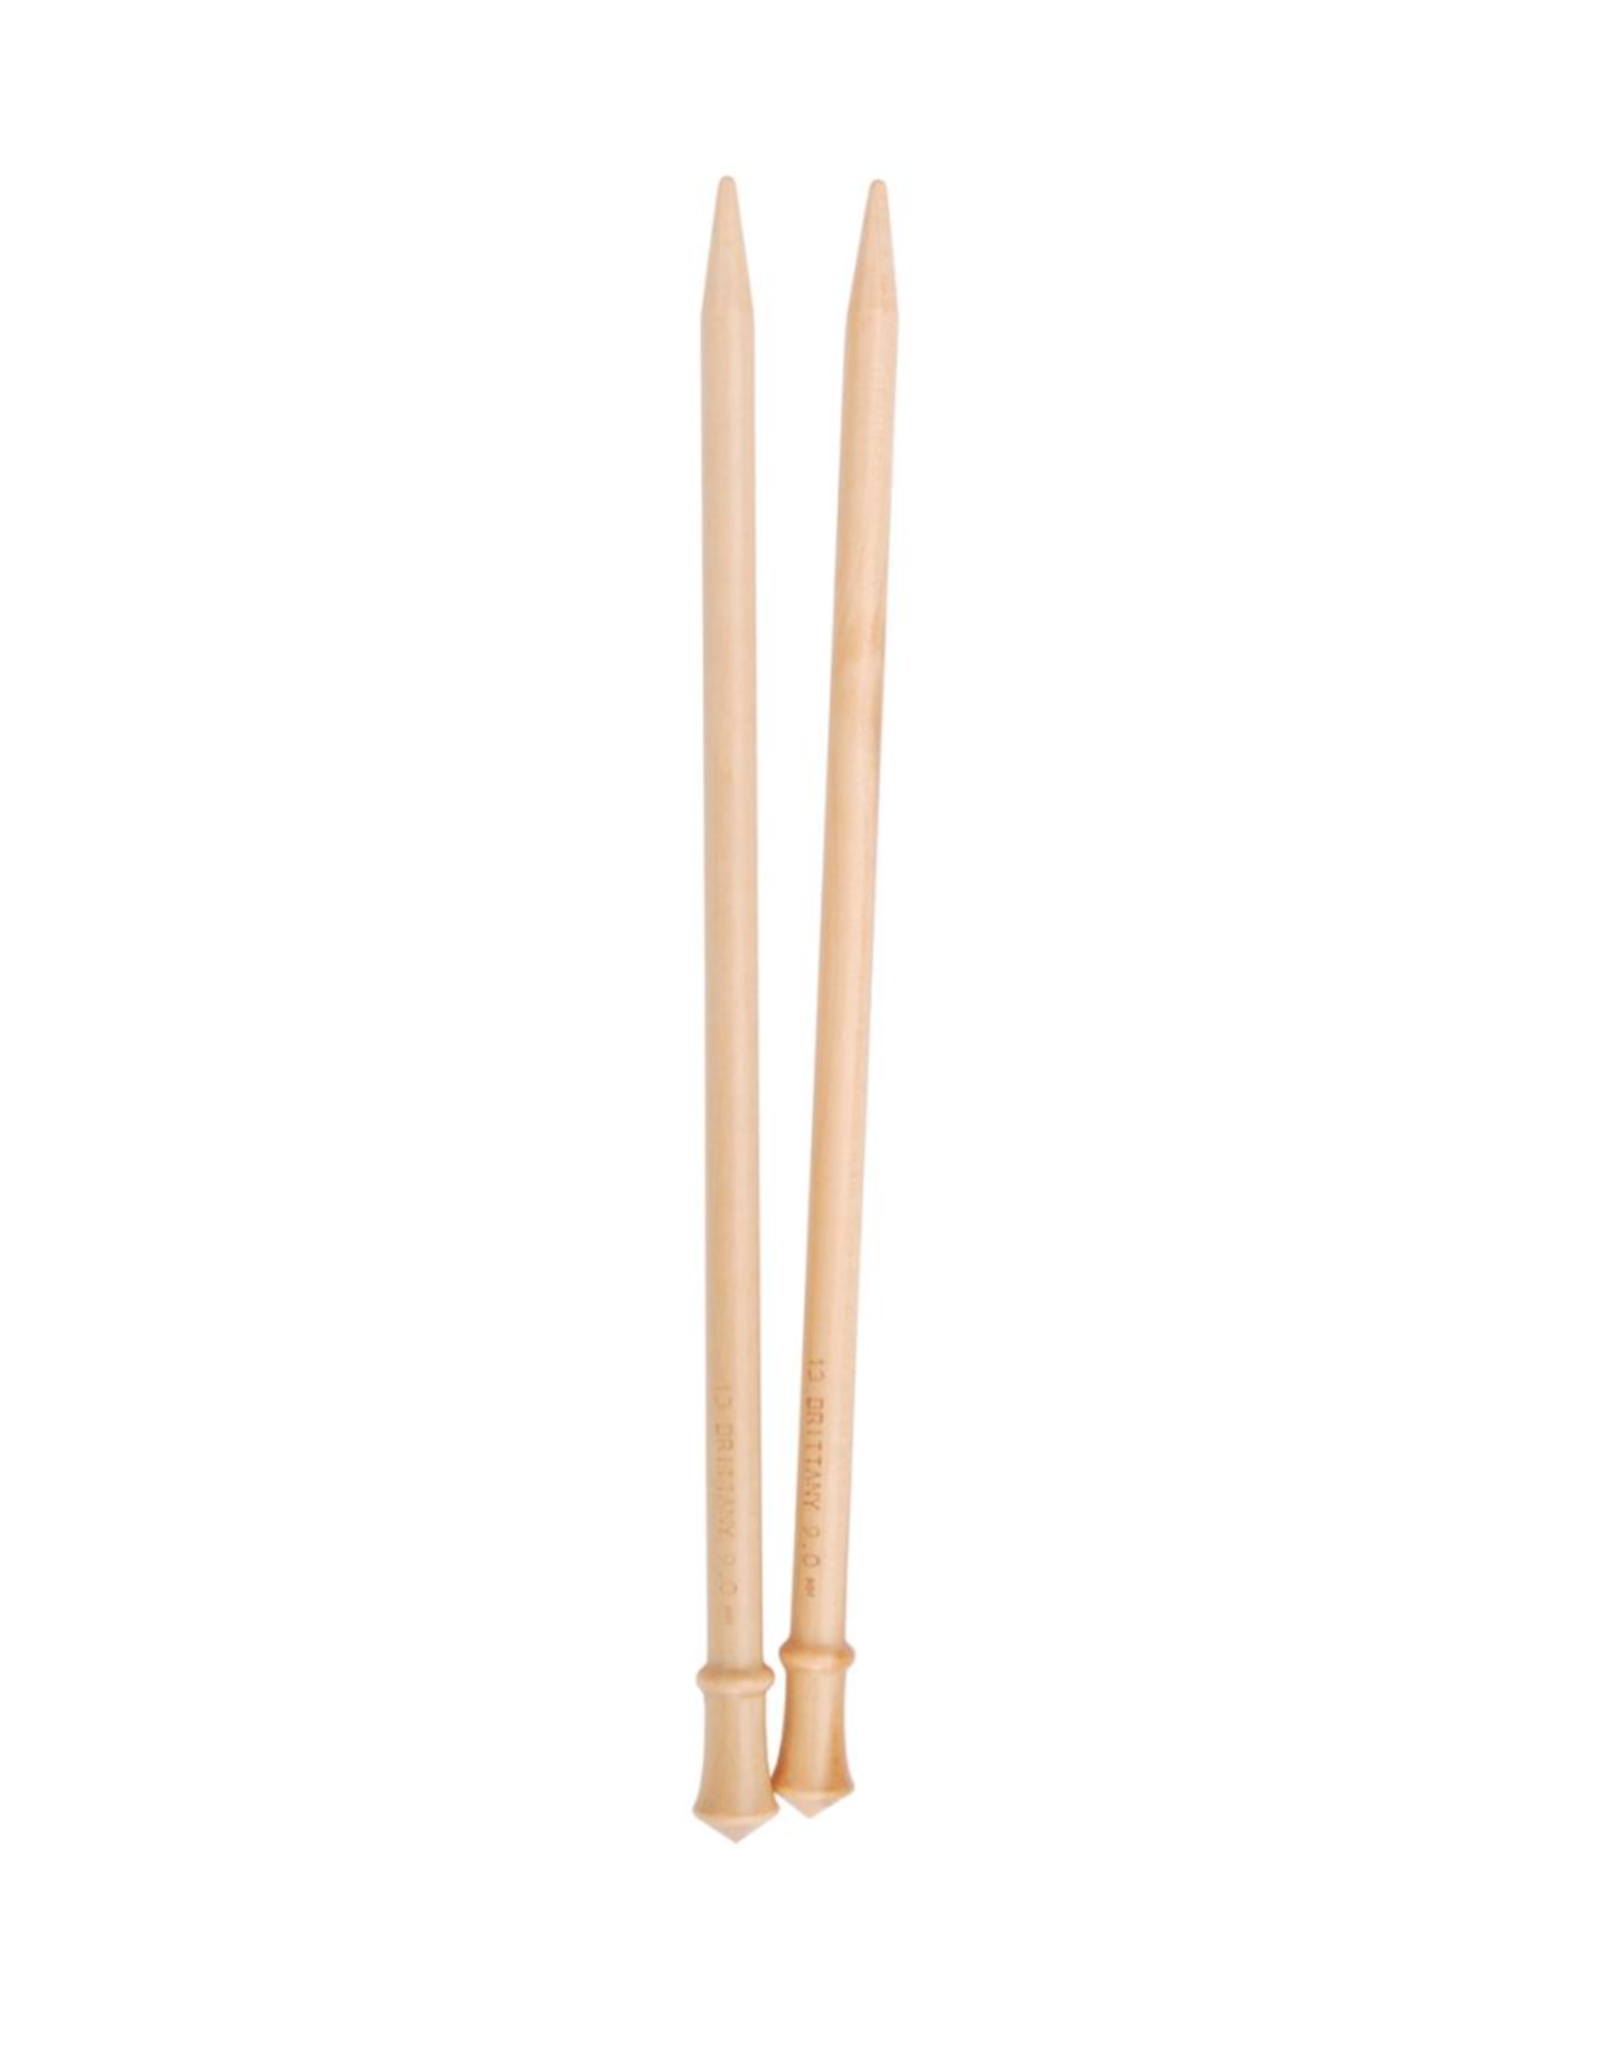 "Brittany 10"" long straight needles, size US 5"